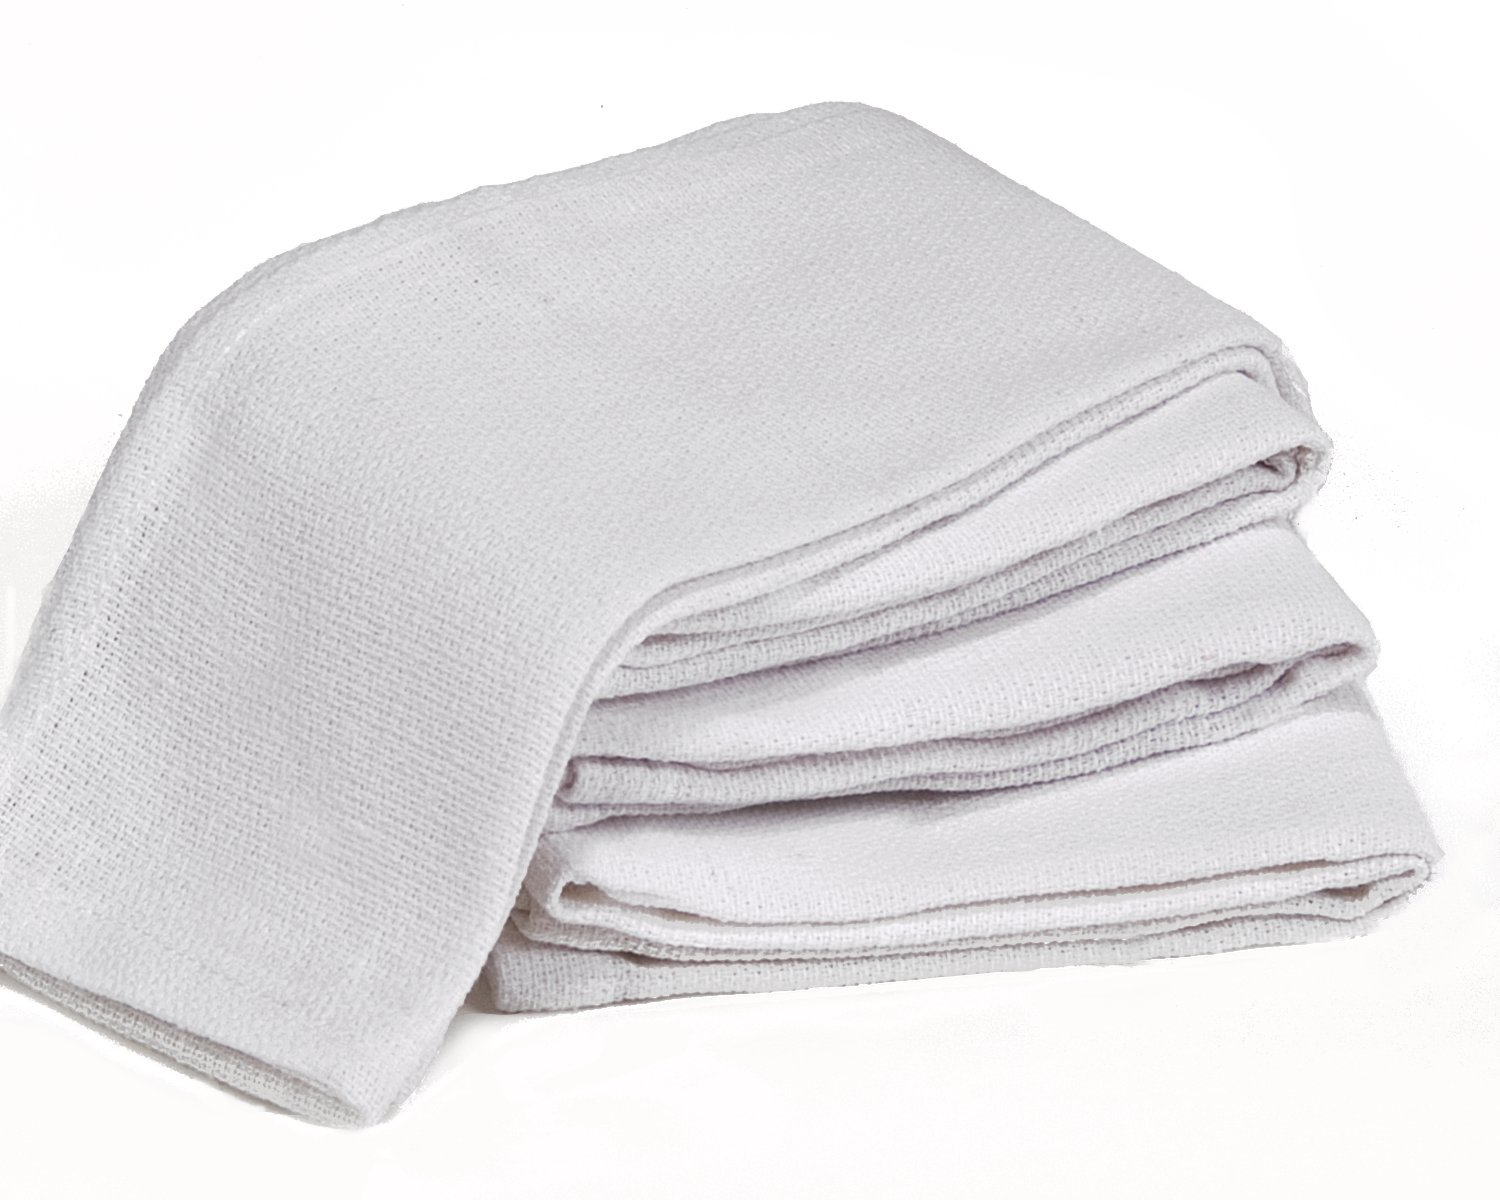 Towels by Doctor Joe Blue 16' x 25' New Surgical Huck Towel, Pack of 12 DJS1600-BL